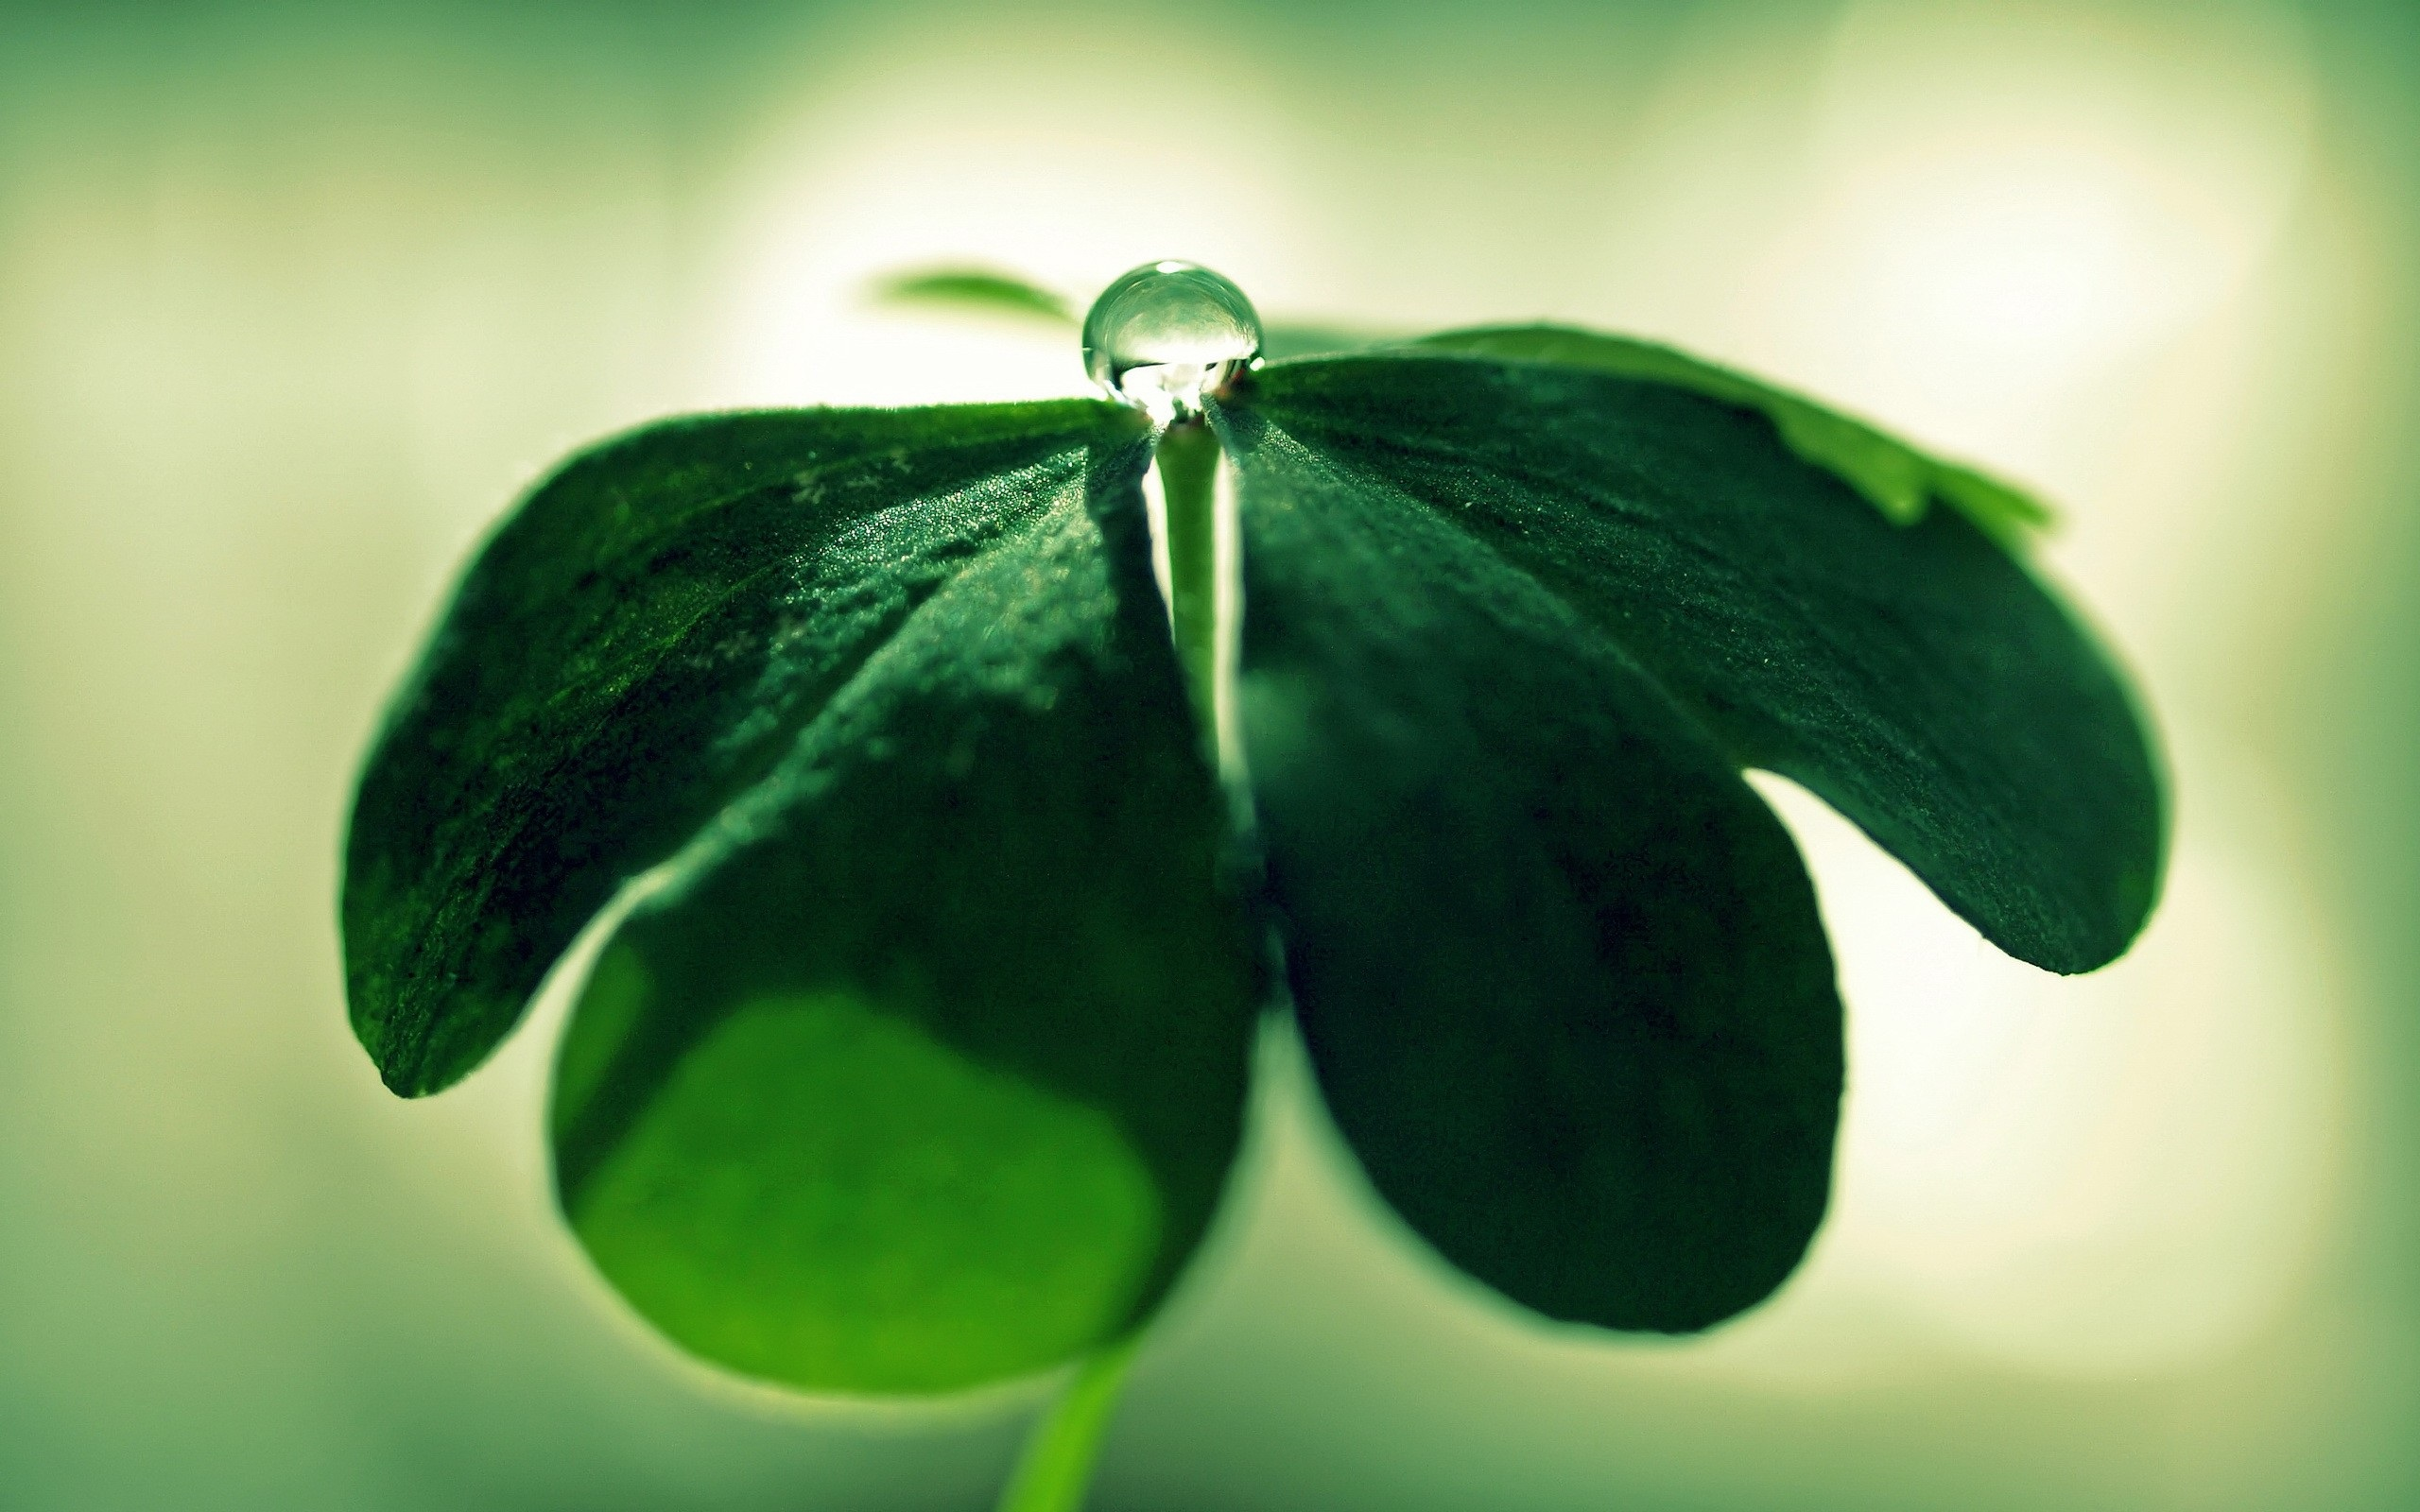 3d Wallpaper Full Hd For Pc Clover Plant Close Up Green Dew Wallpaper Nature And